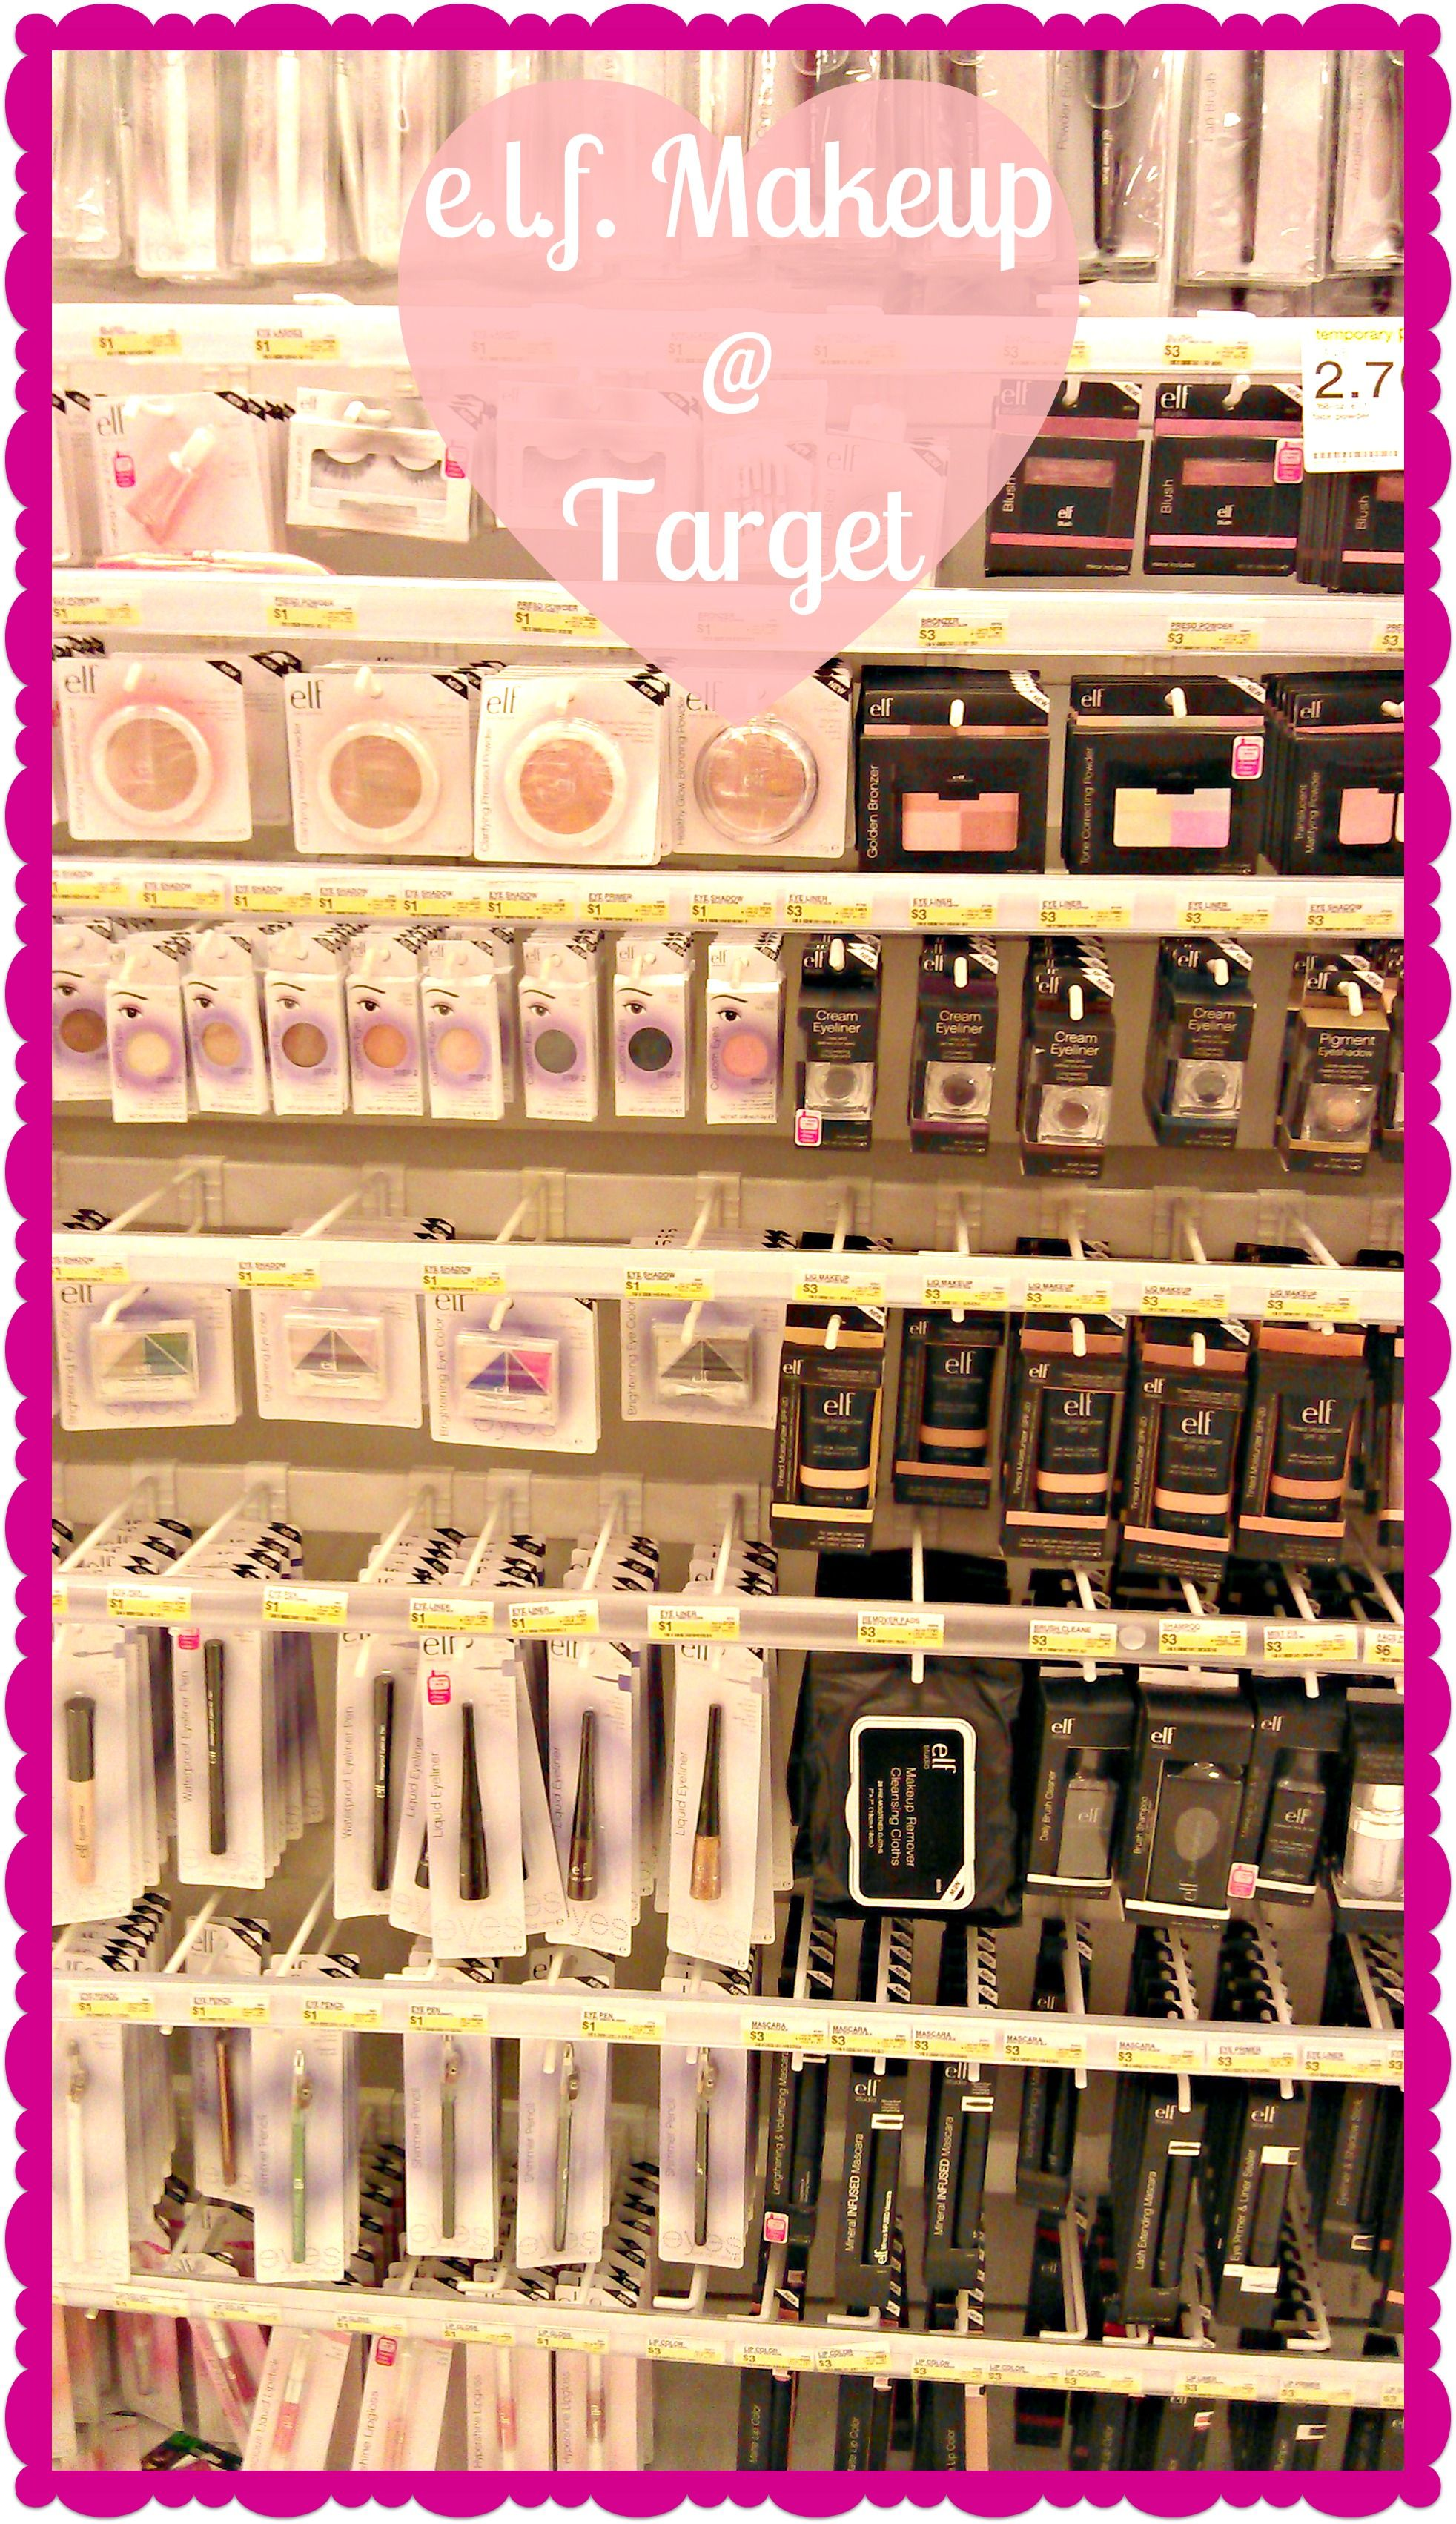 Frugally Fashionable My 20 Makeup Haul With E L F Cosmetics Elf Makeup Target Makeup Trendy Makeup